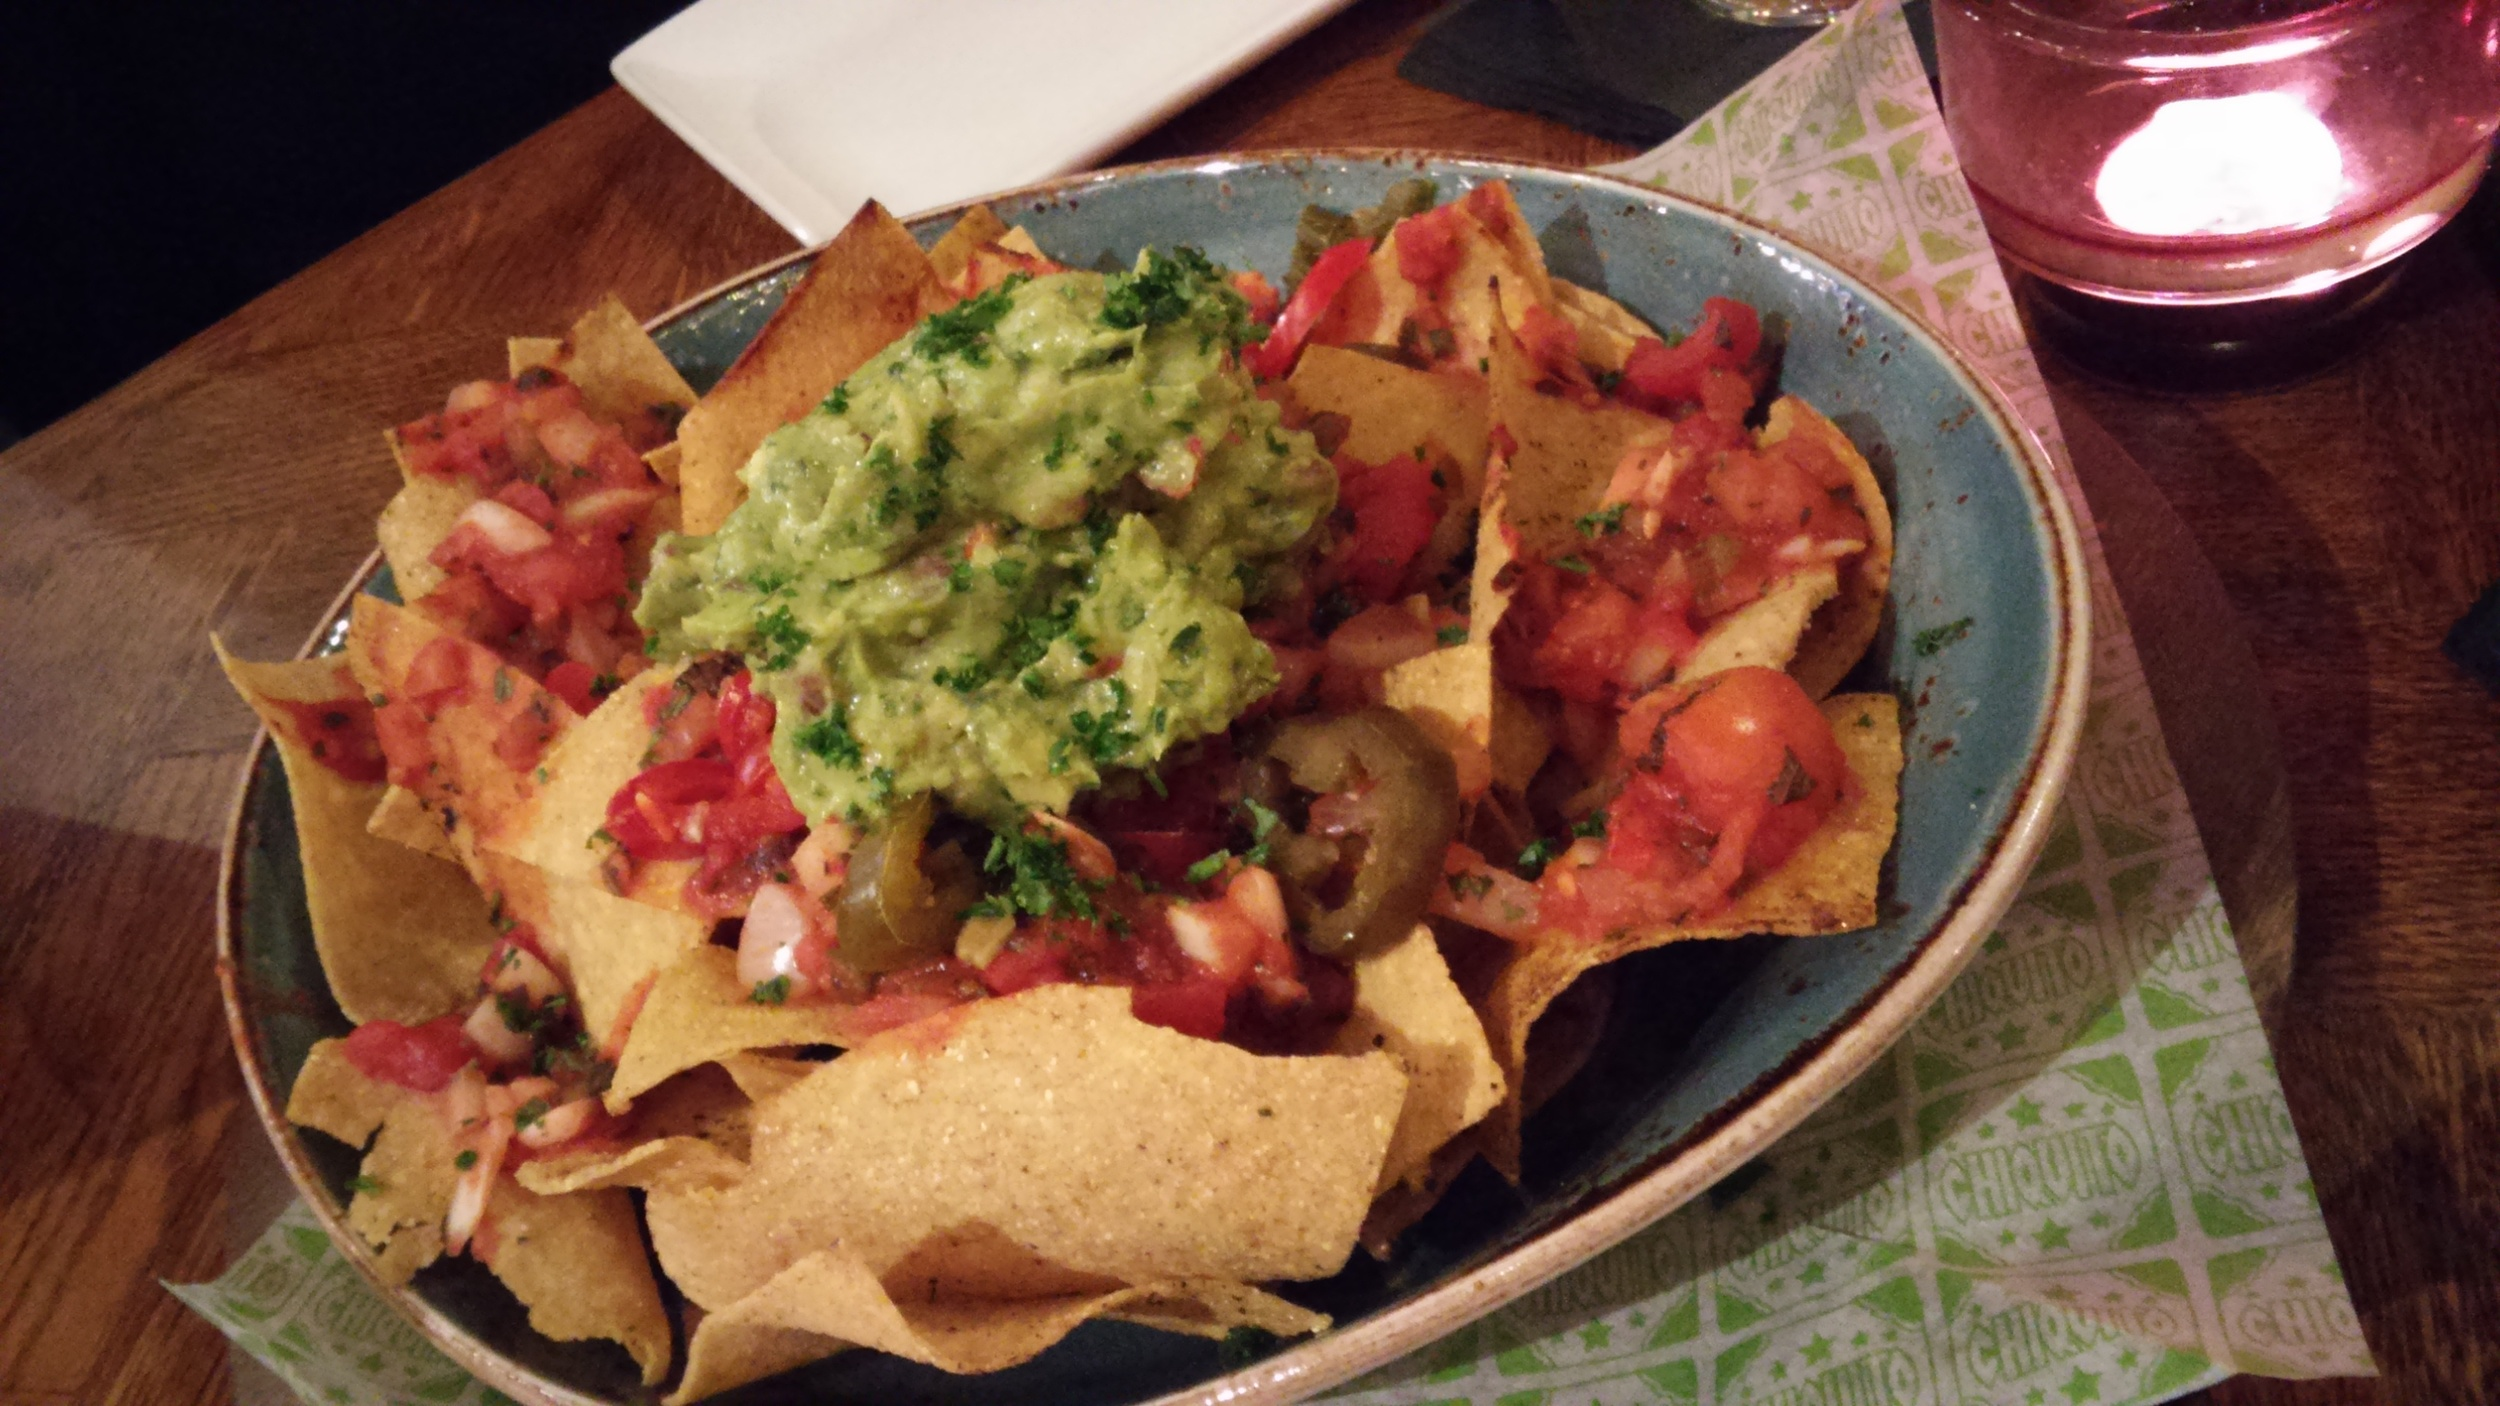 Link to eating vegan at Chiquito